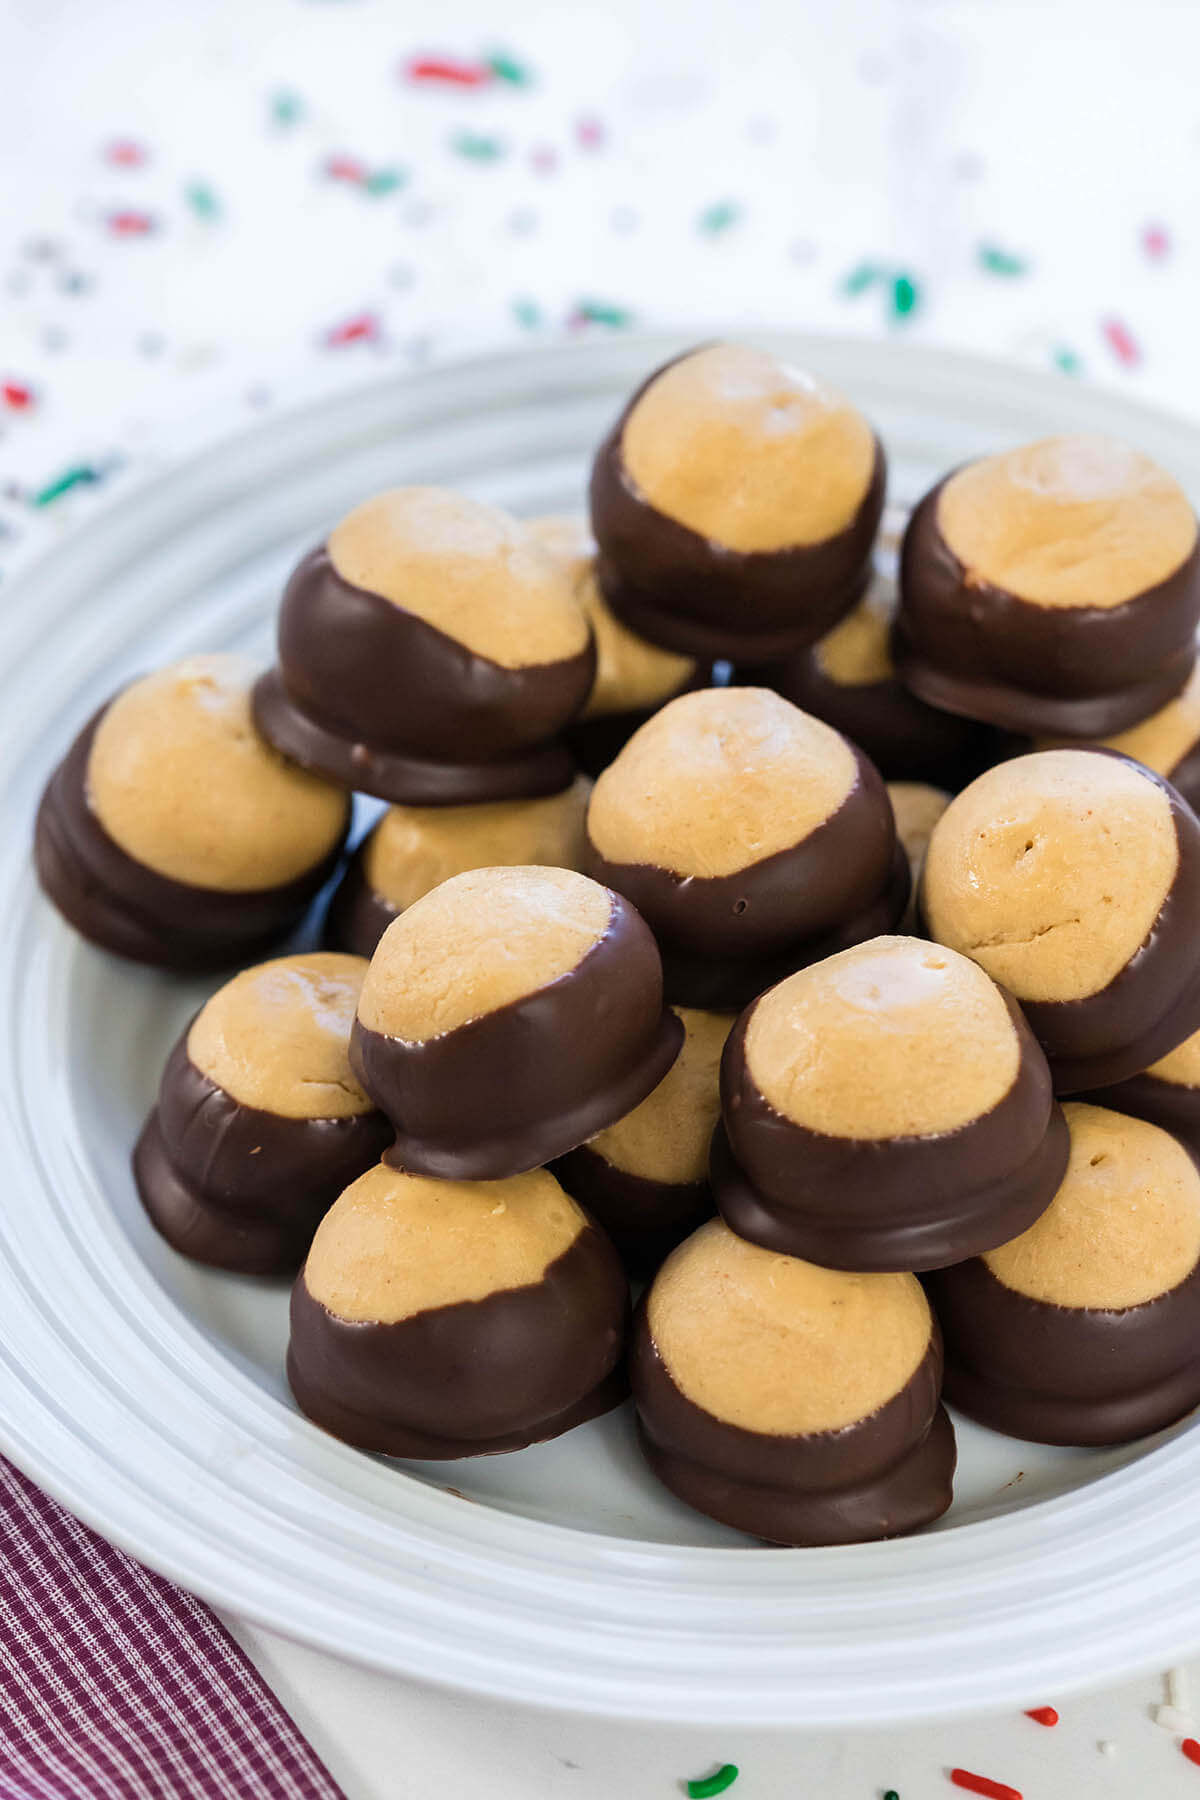 Homemade Buckeyes on a white plate.